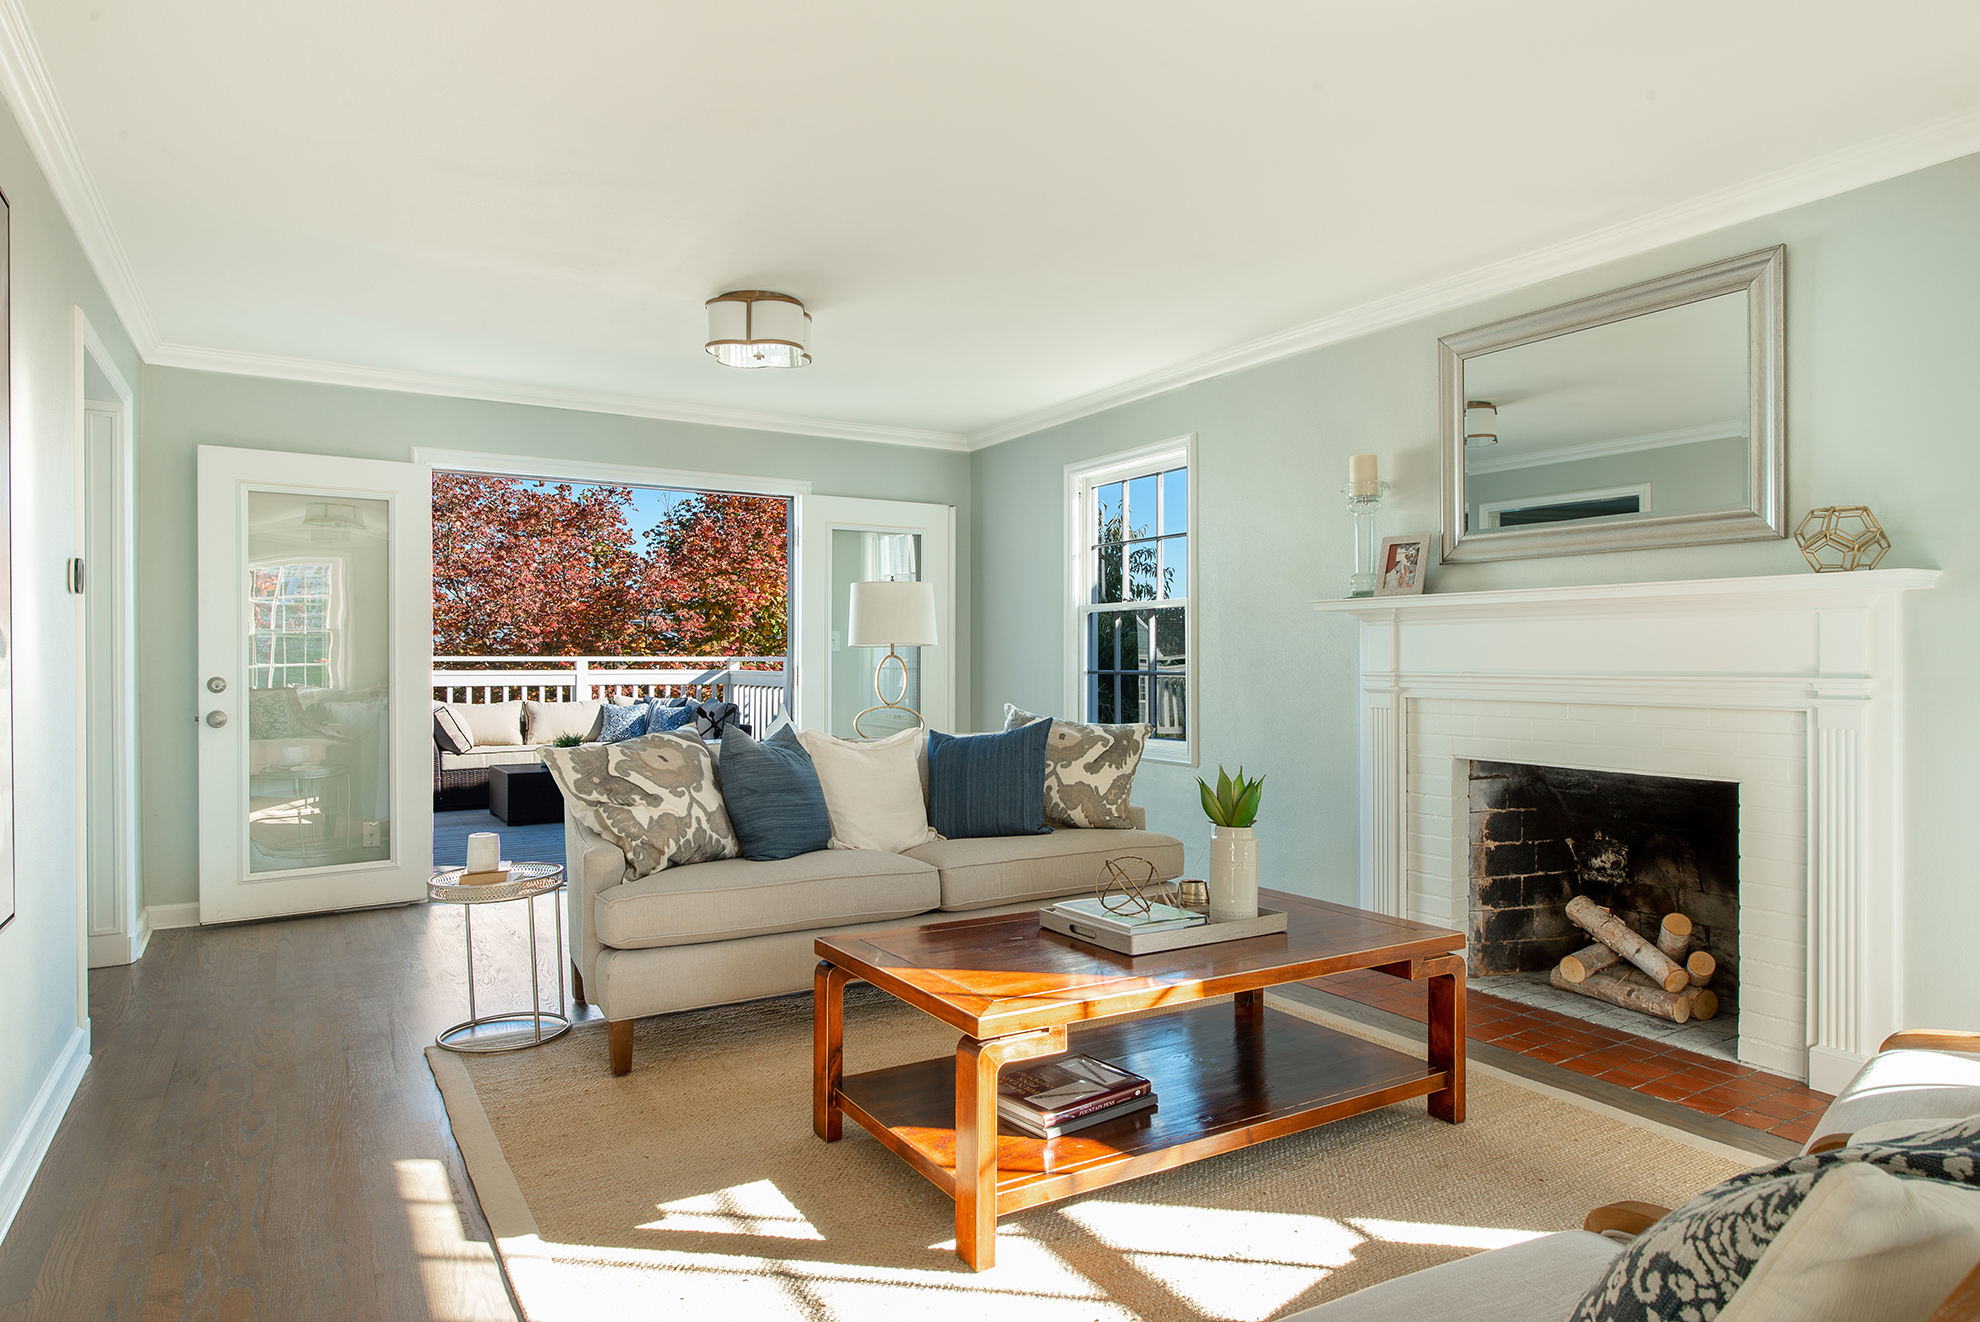 French doors to the deck provide beautiful light in the living area.